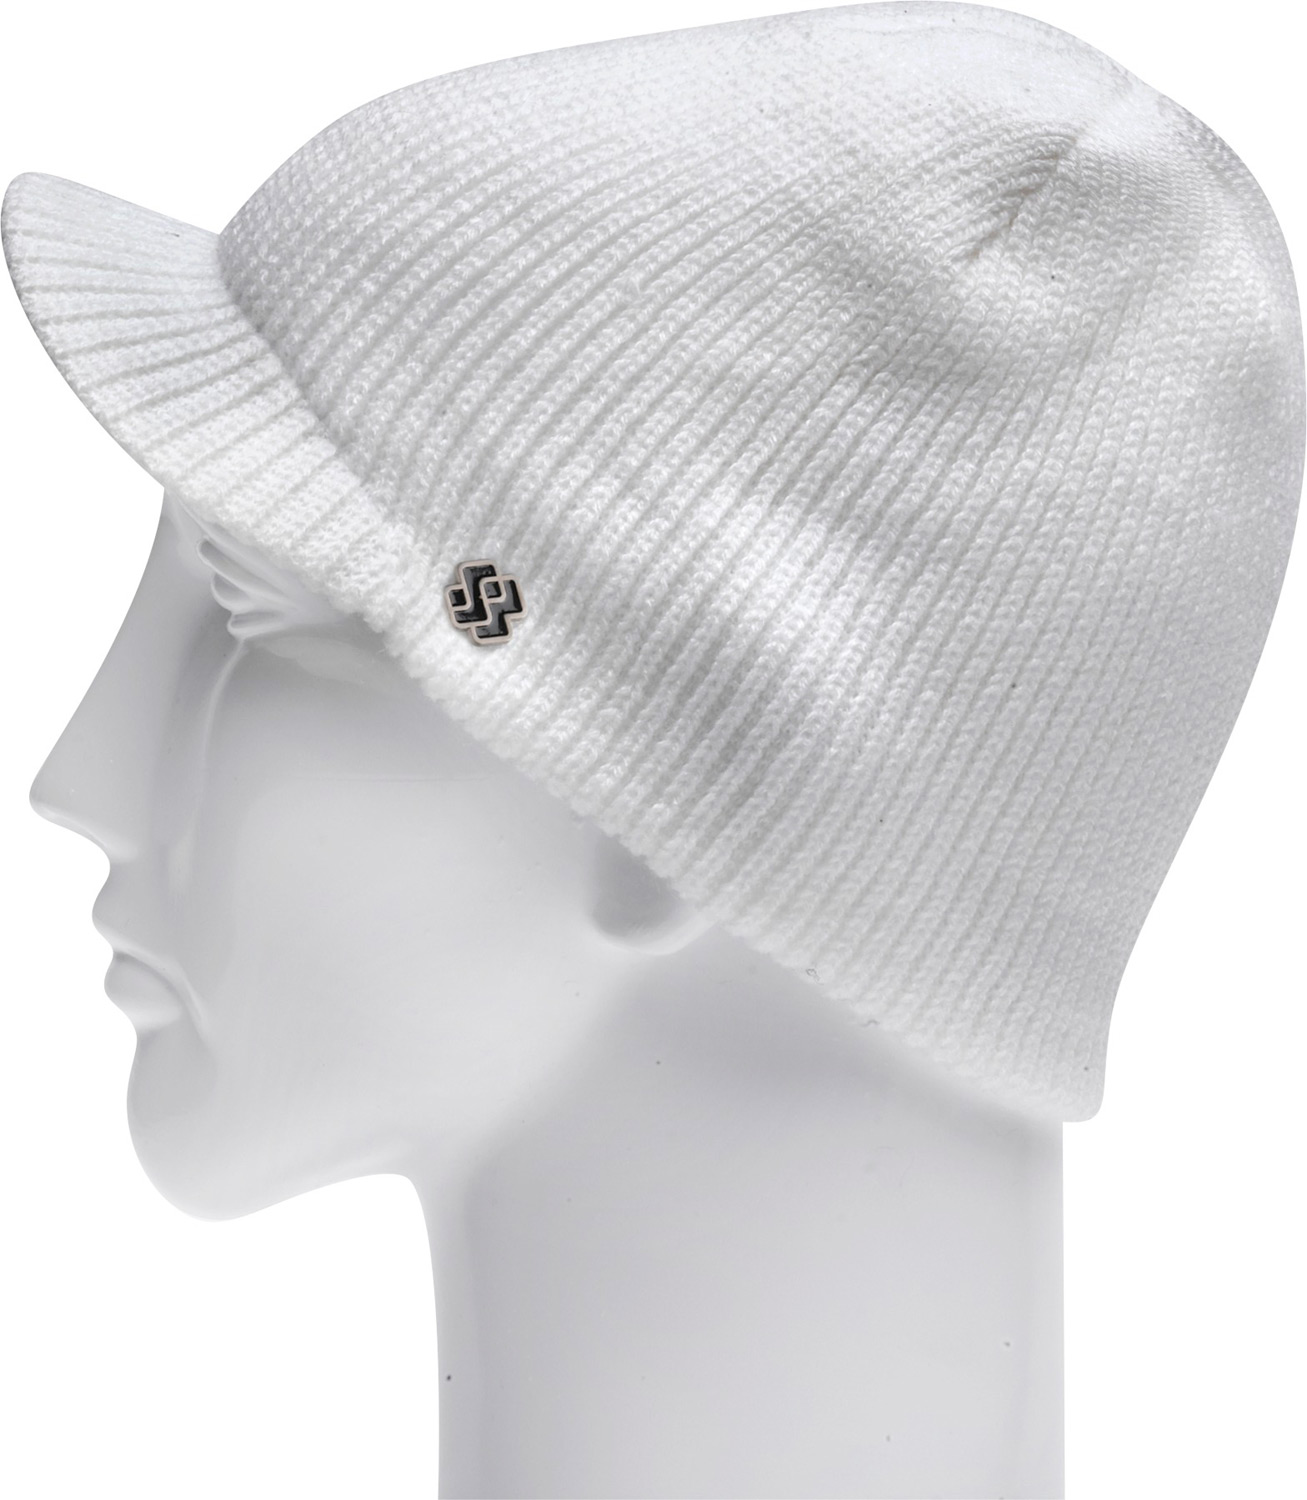 "Key Features of the Special Blend Beat Visor Beanie: Machine knit 100% acrylic 7.5"" tall Visor beanie One size fits all - $23.95"